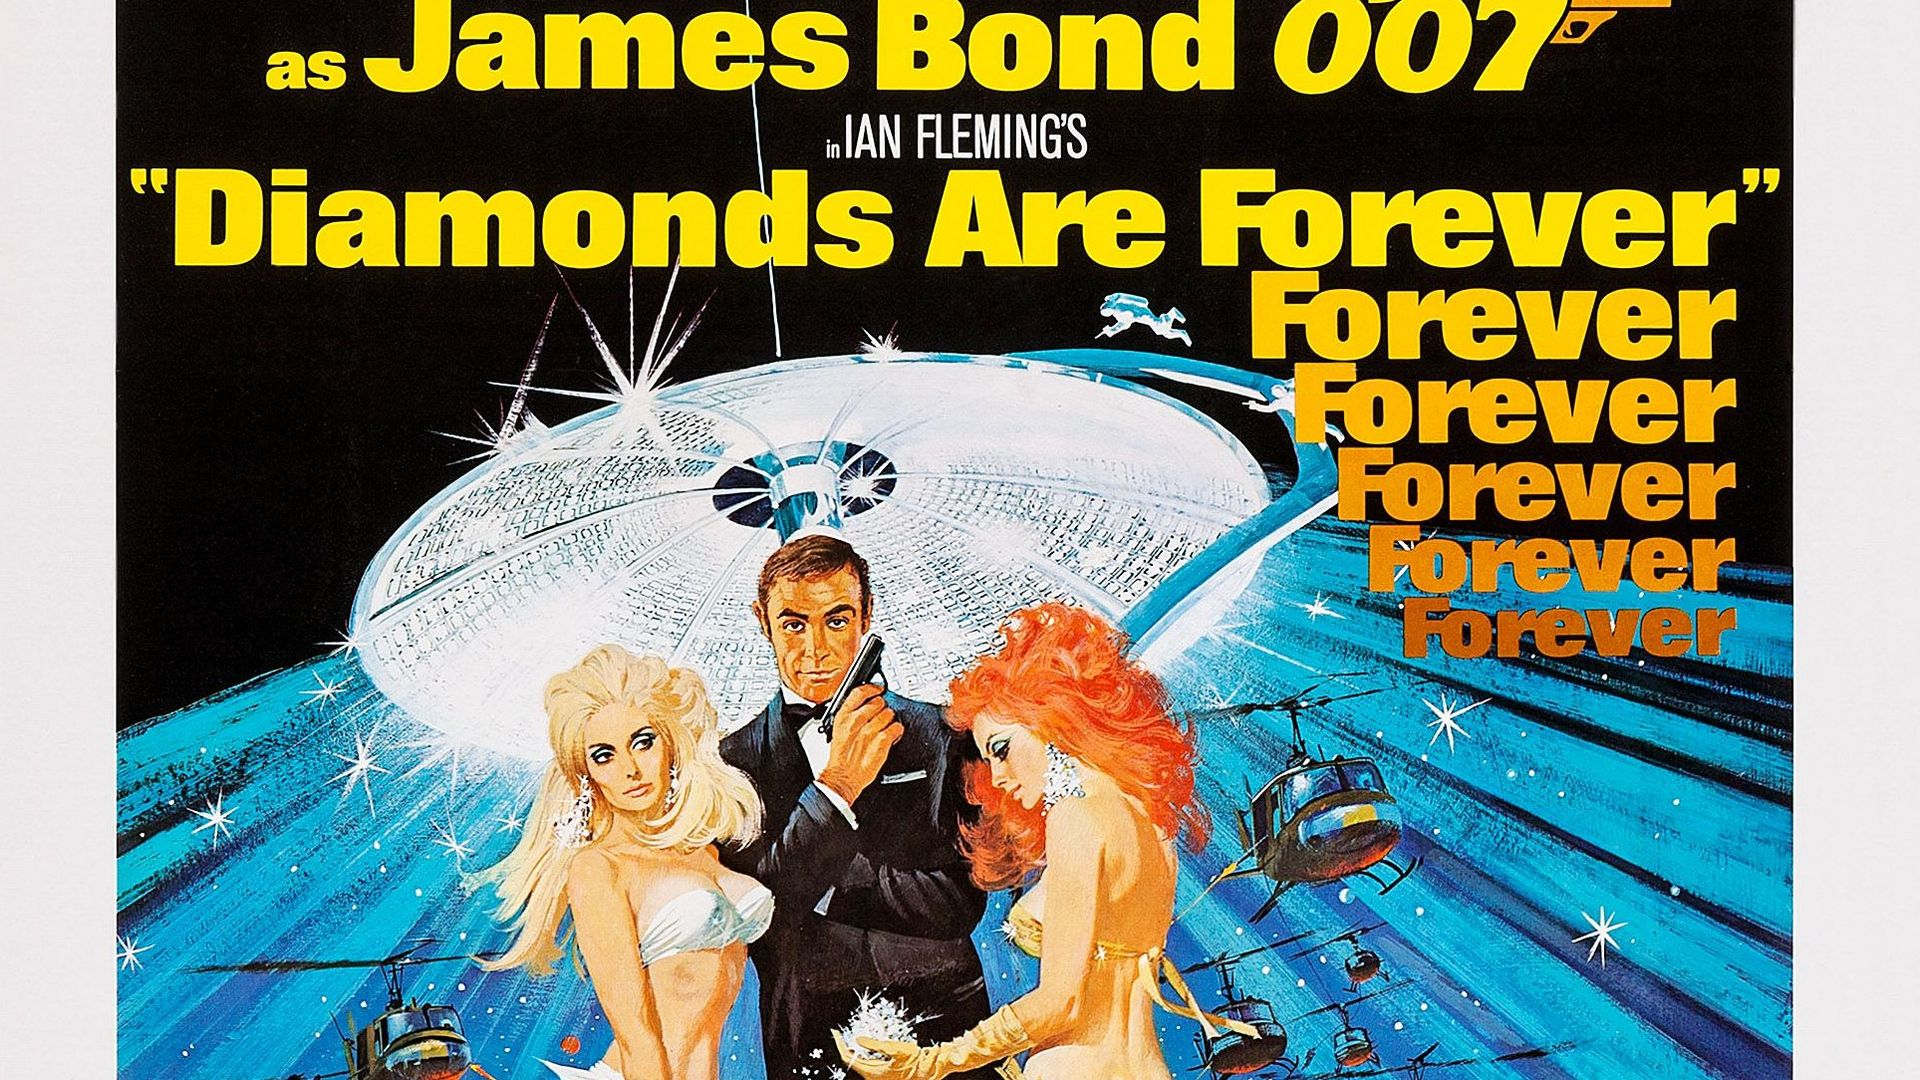 Bond Posters: Diamonds Are Forever